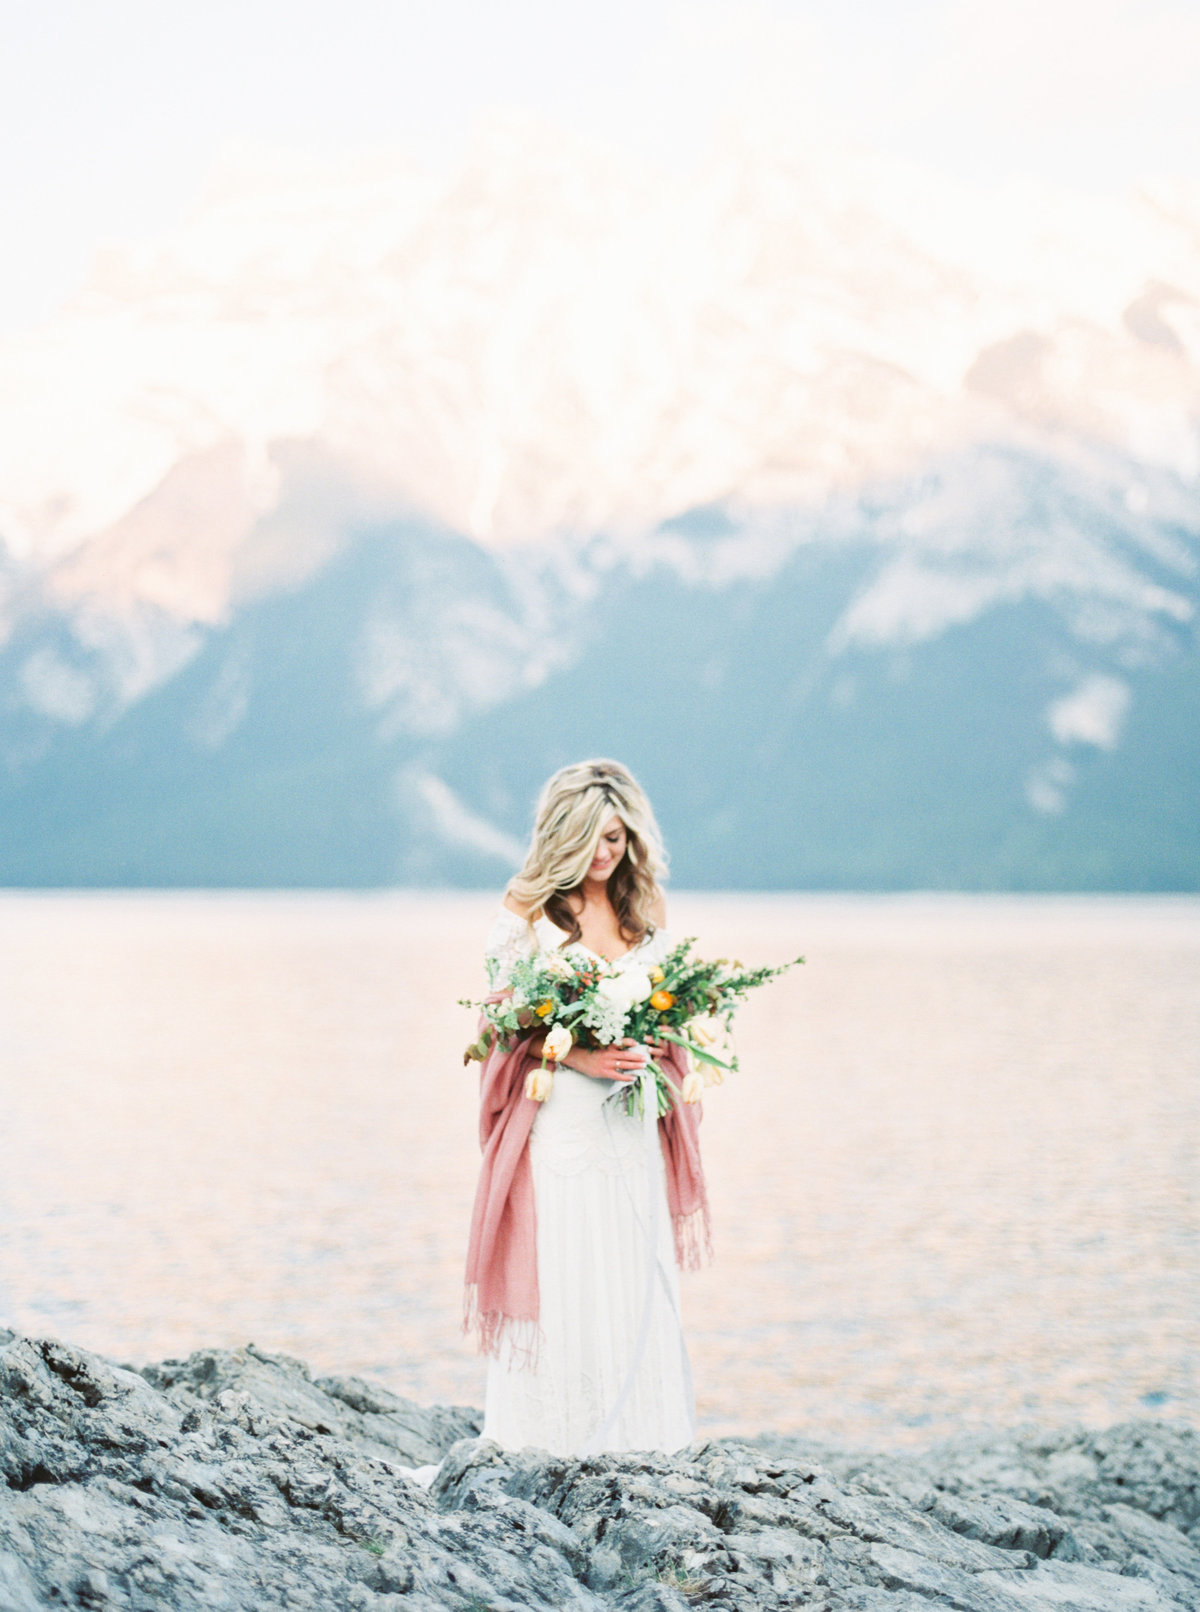 banff_wedding_inspiration-0018